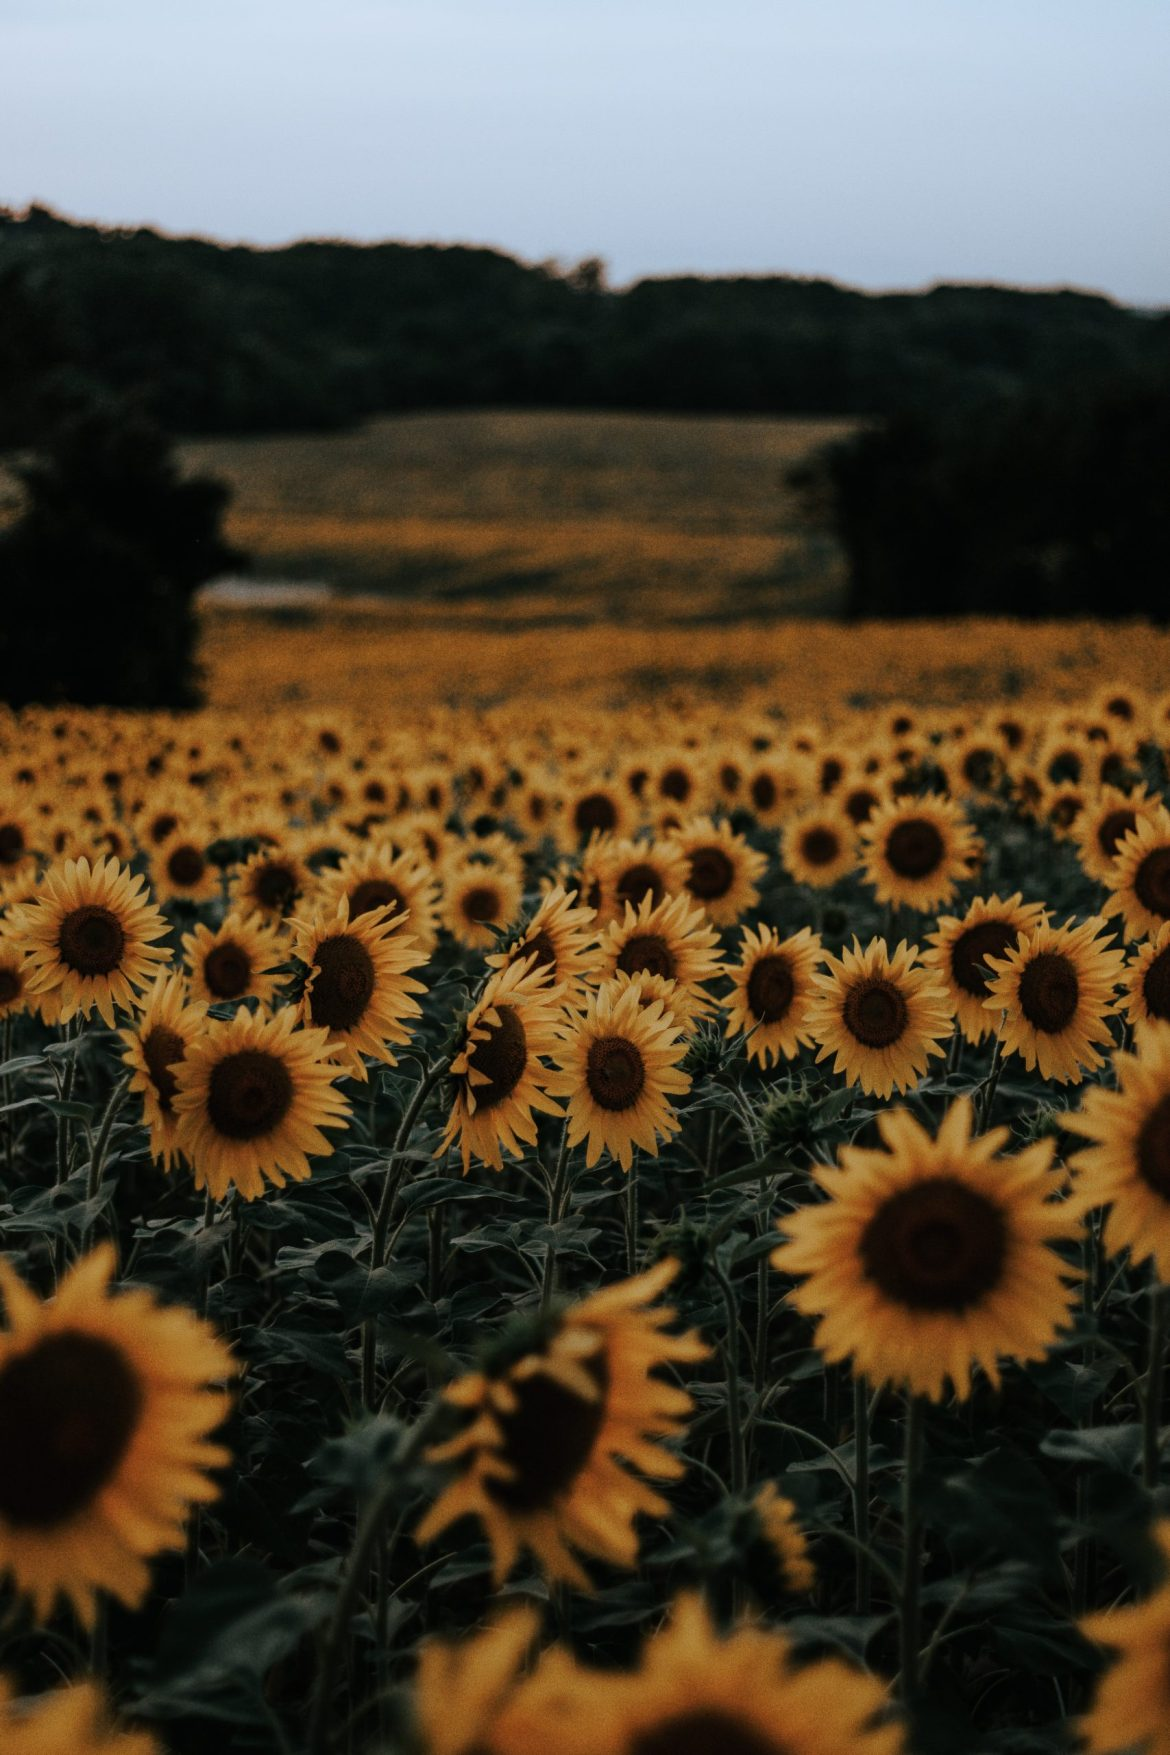 History of the Eau Claire Sunflowers